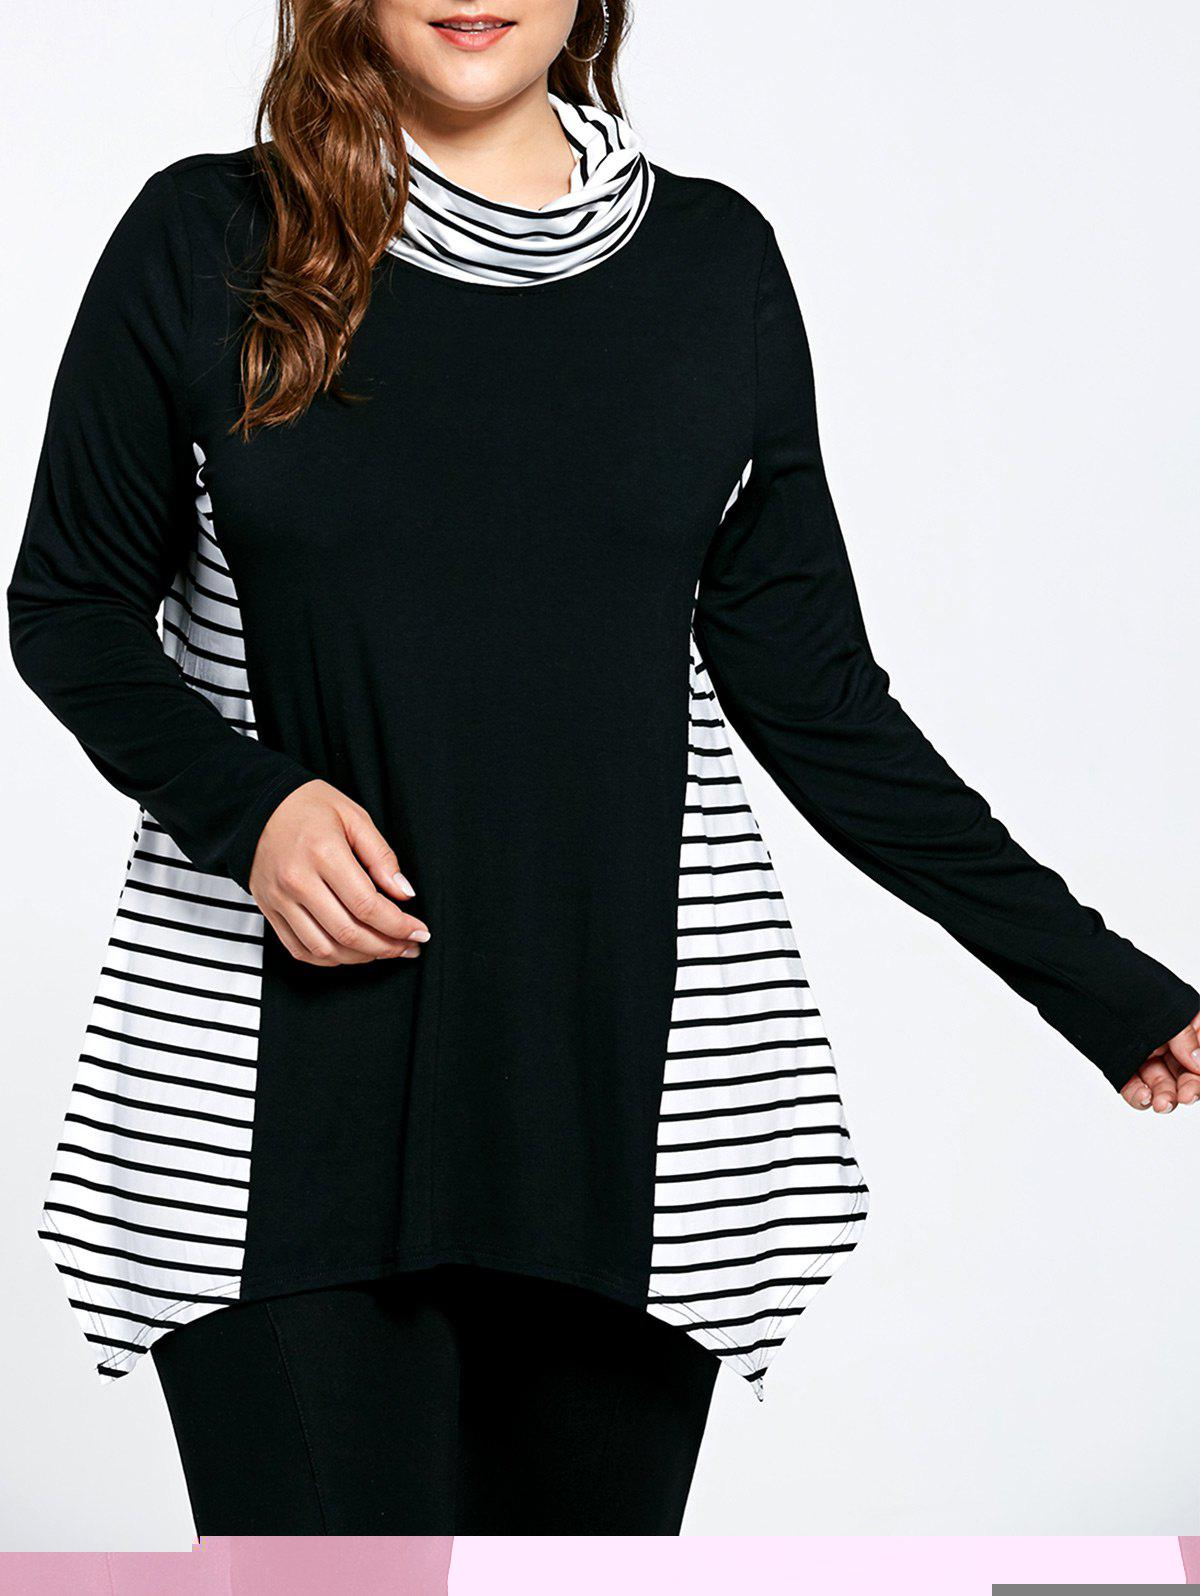 Stripe Panel Plus Size Turtleneck Asymmetric T-shirt - COLORMIX 5XL